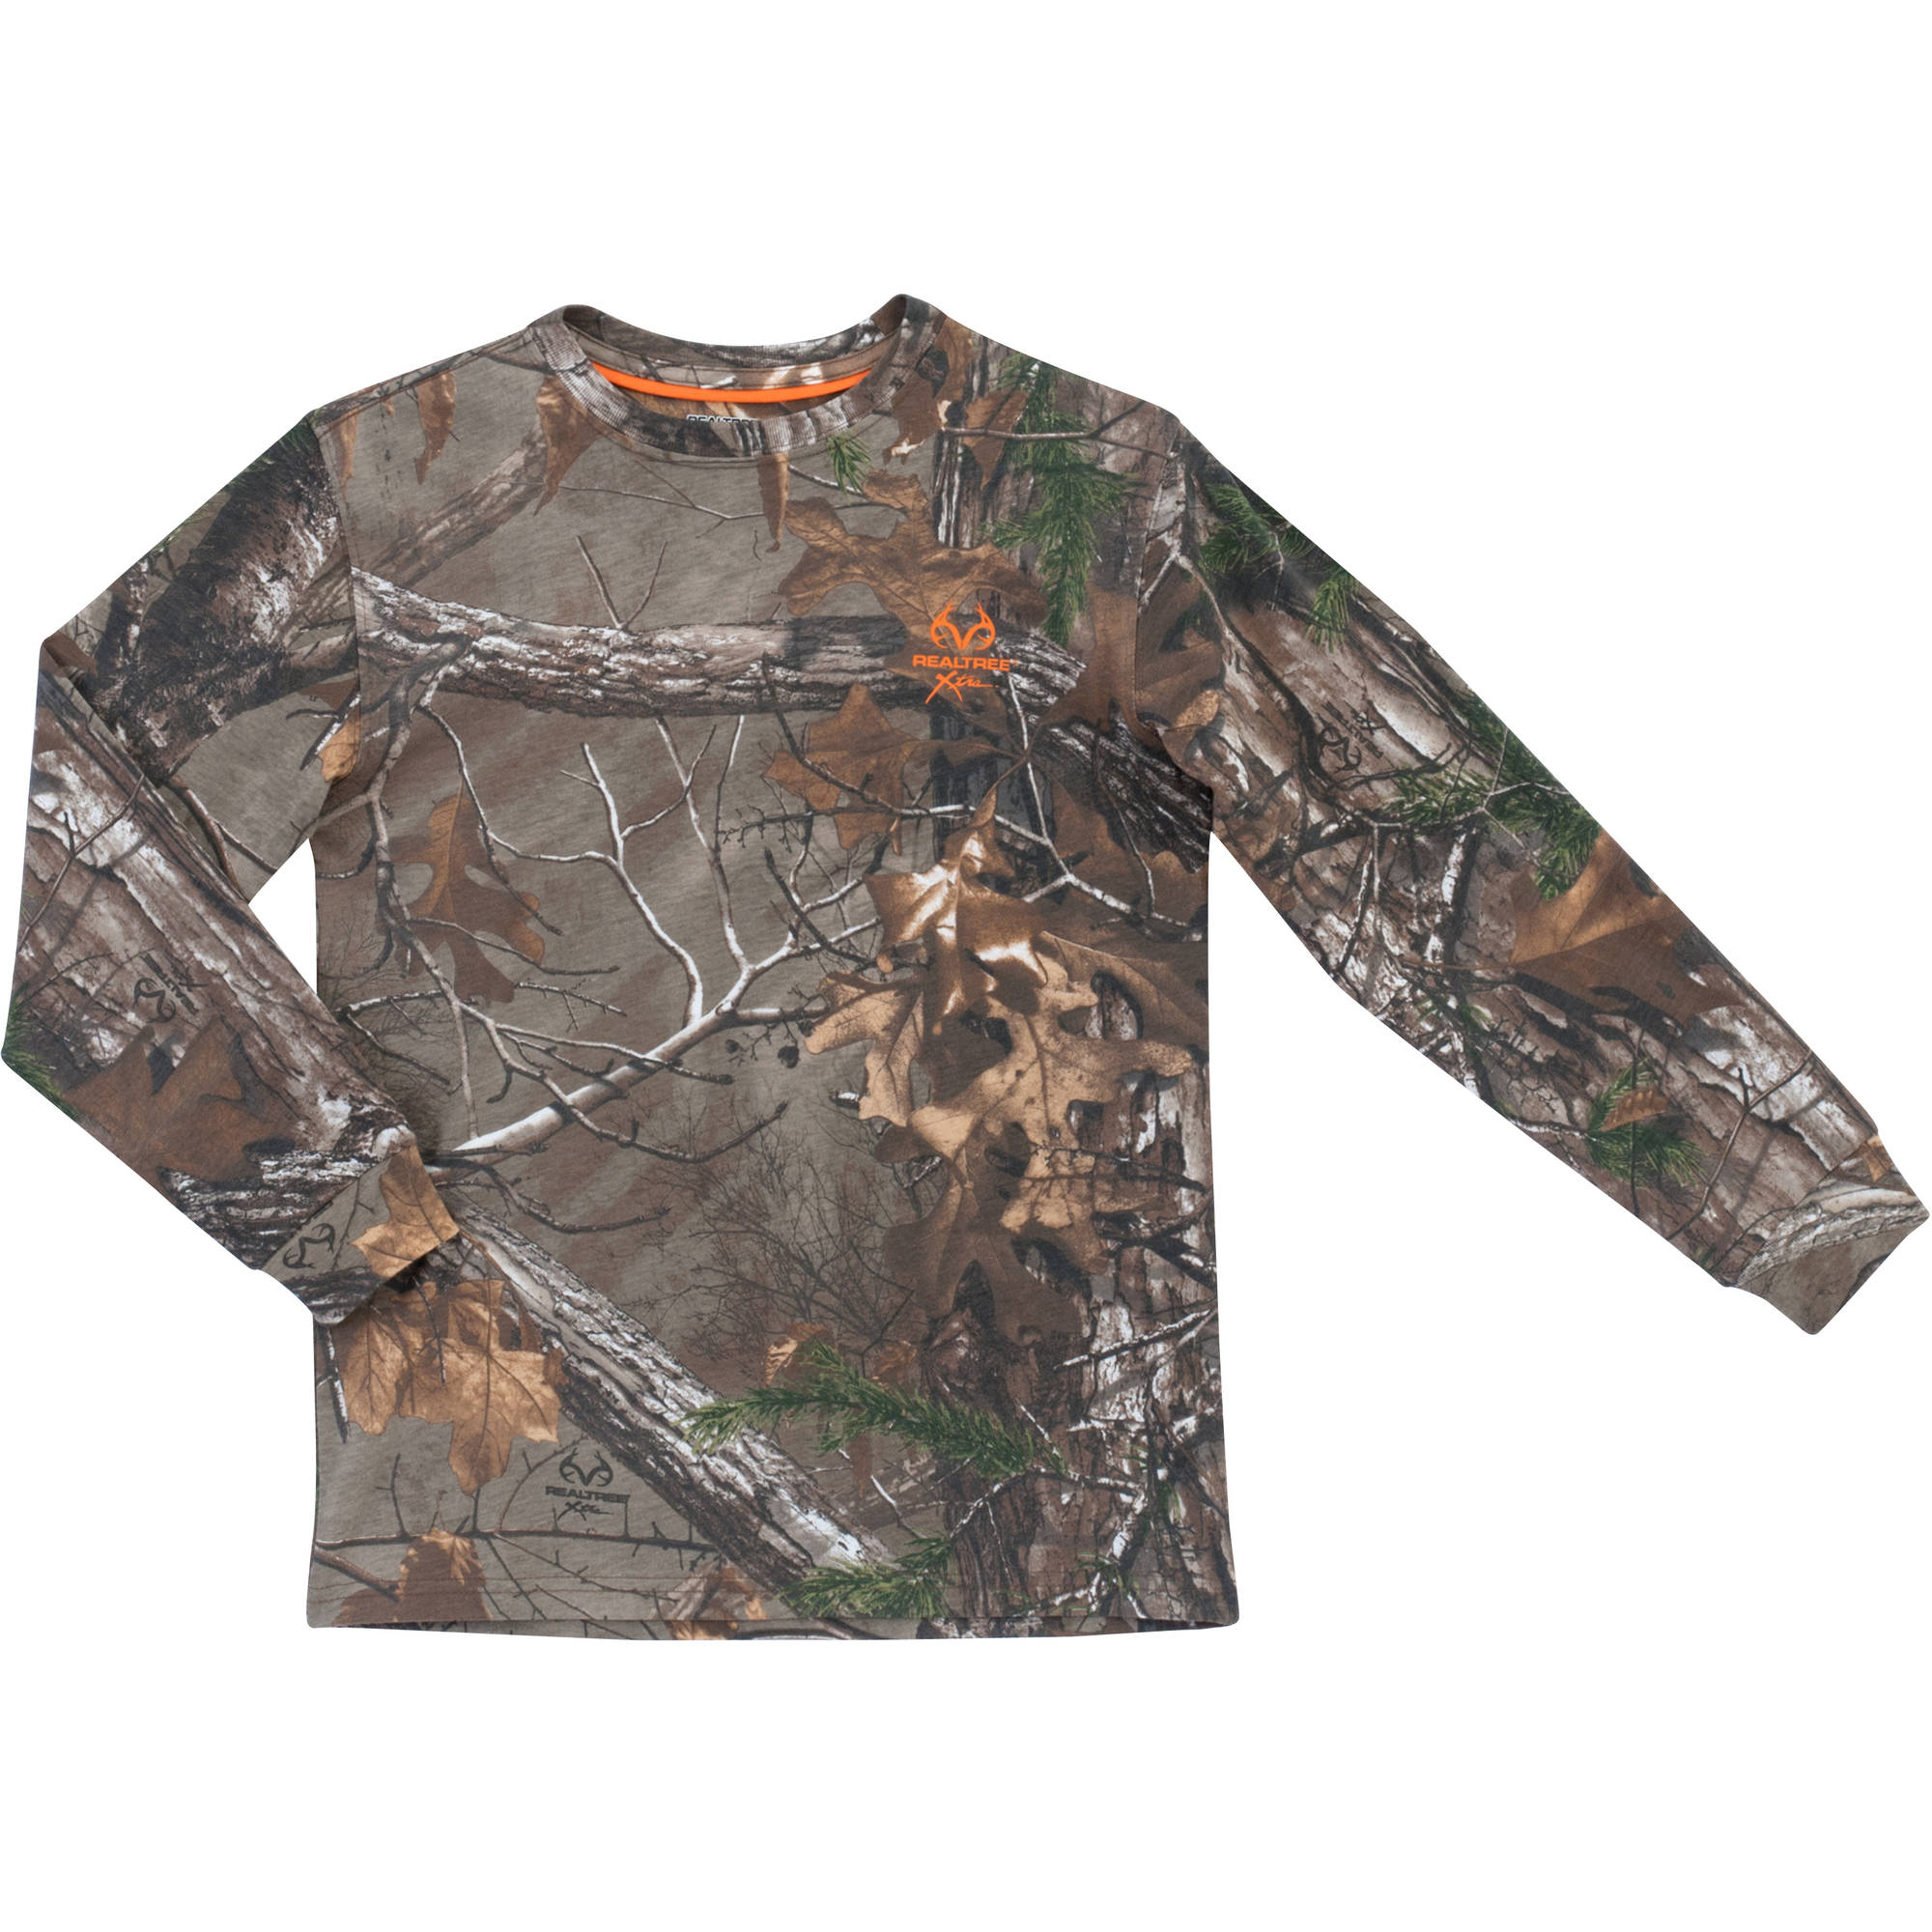 Boys' Long-Sleeved Camo Tee, Realtree Patterns